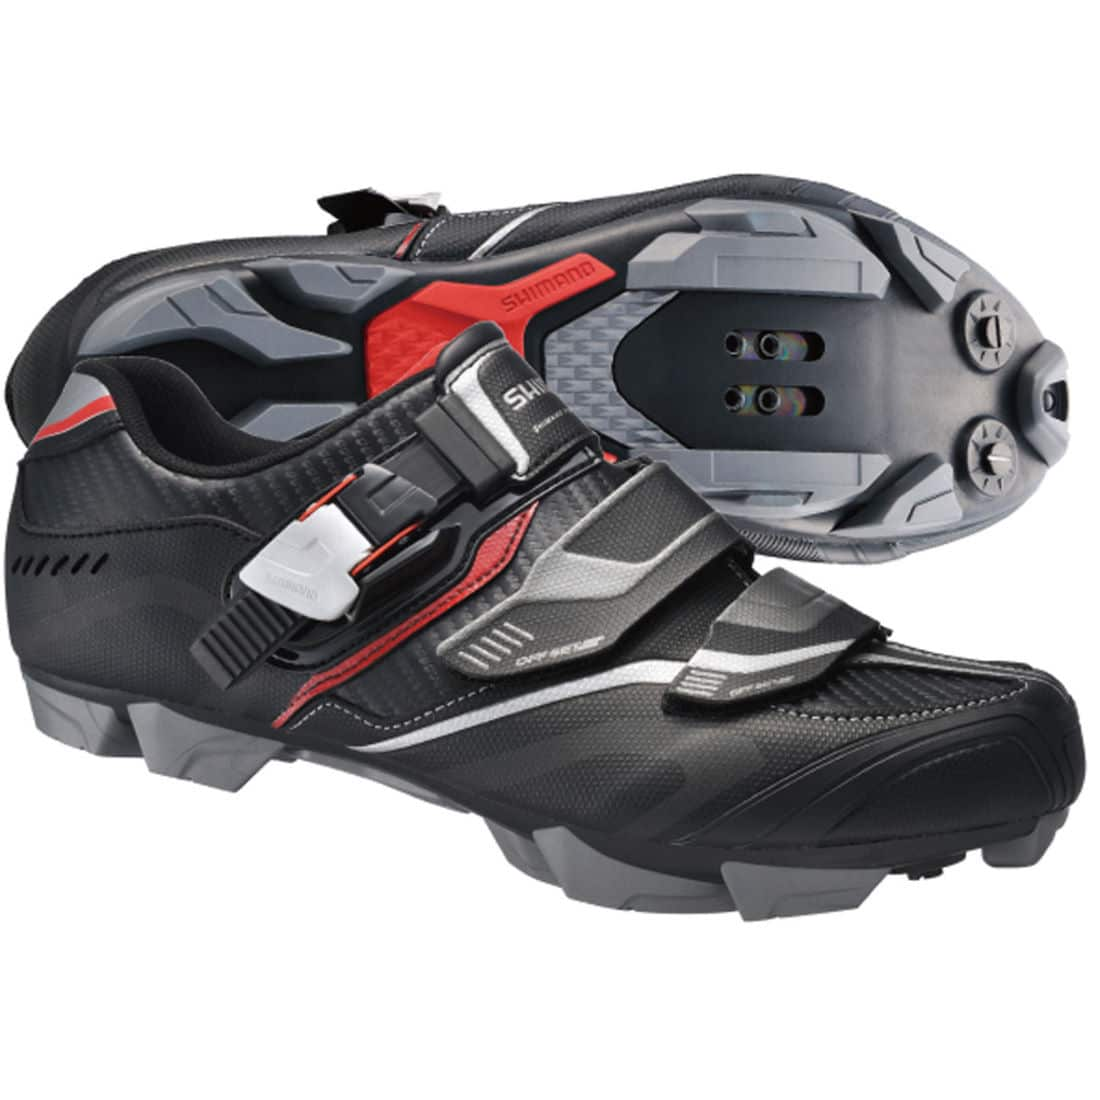 15 Best Cycling Shoes and Pedals of 2018 - Buying Guide and Reviews 53